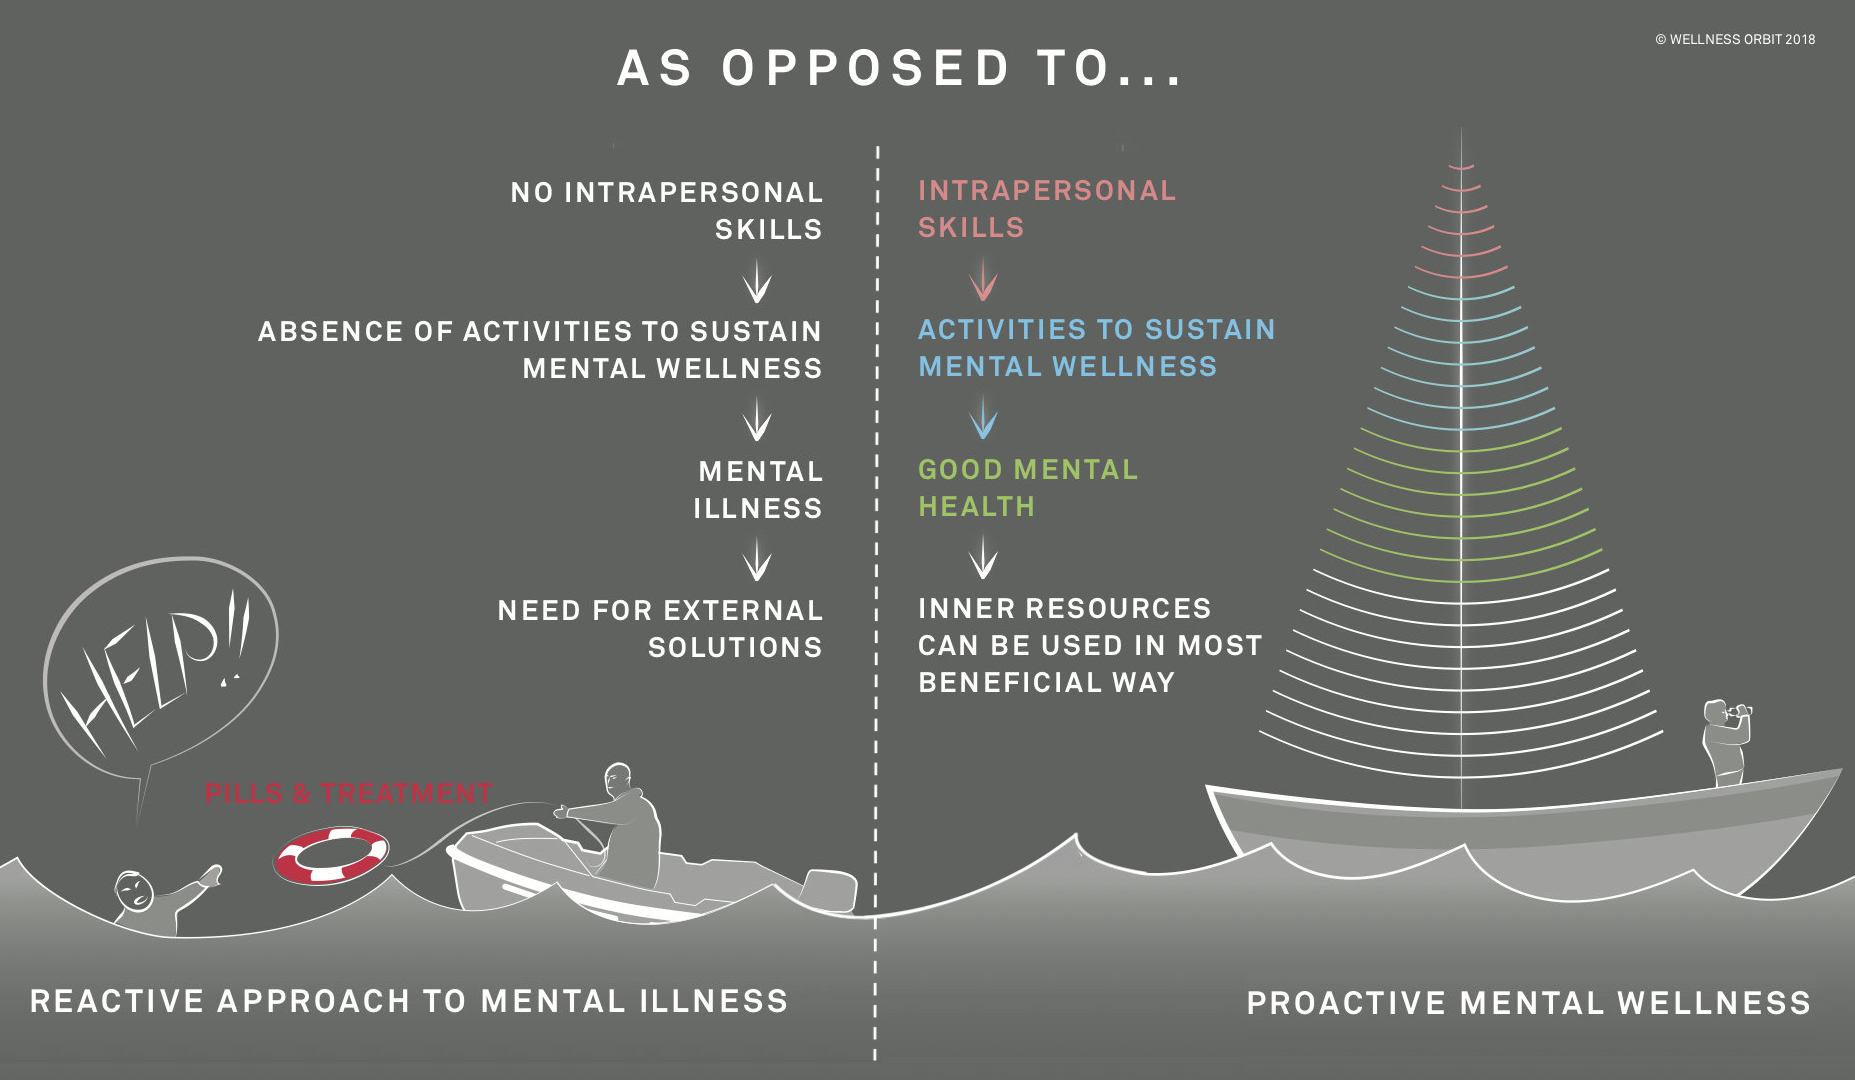 Mental illness vs mental health